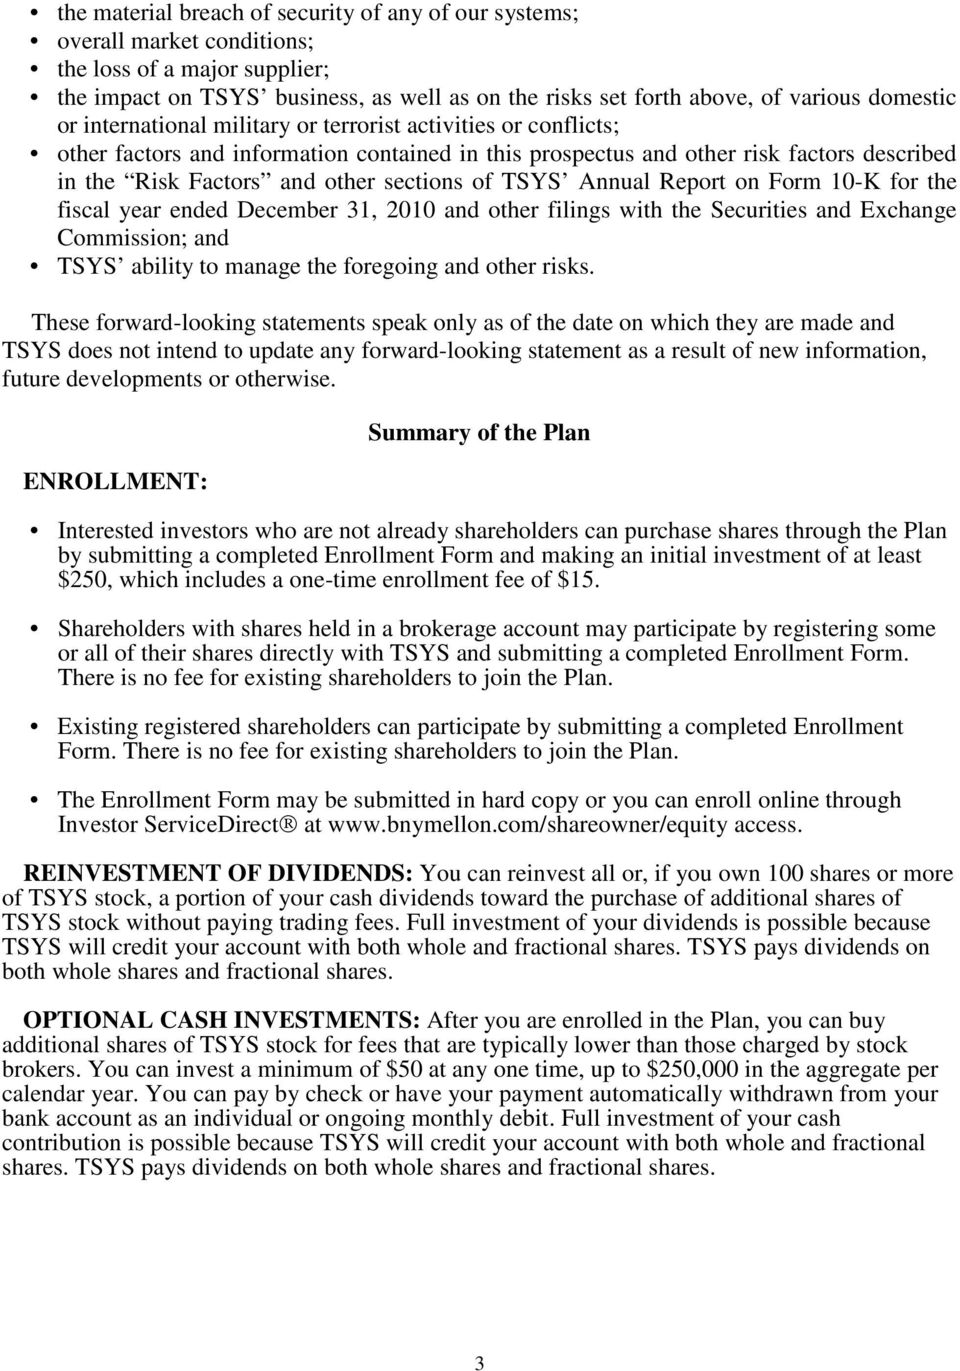 sections of TSYS Annual Report on Form 10-K for the fiscal year ended December 31, 2010 and other filings with the Securities and Exchange Commission; and TSYS ability to manage the foregoing and